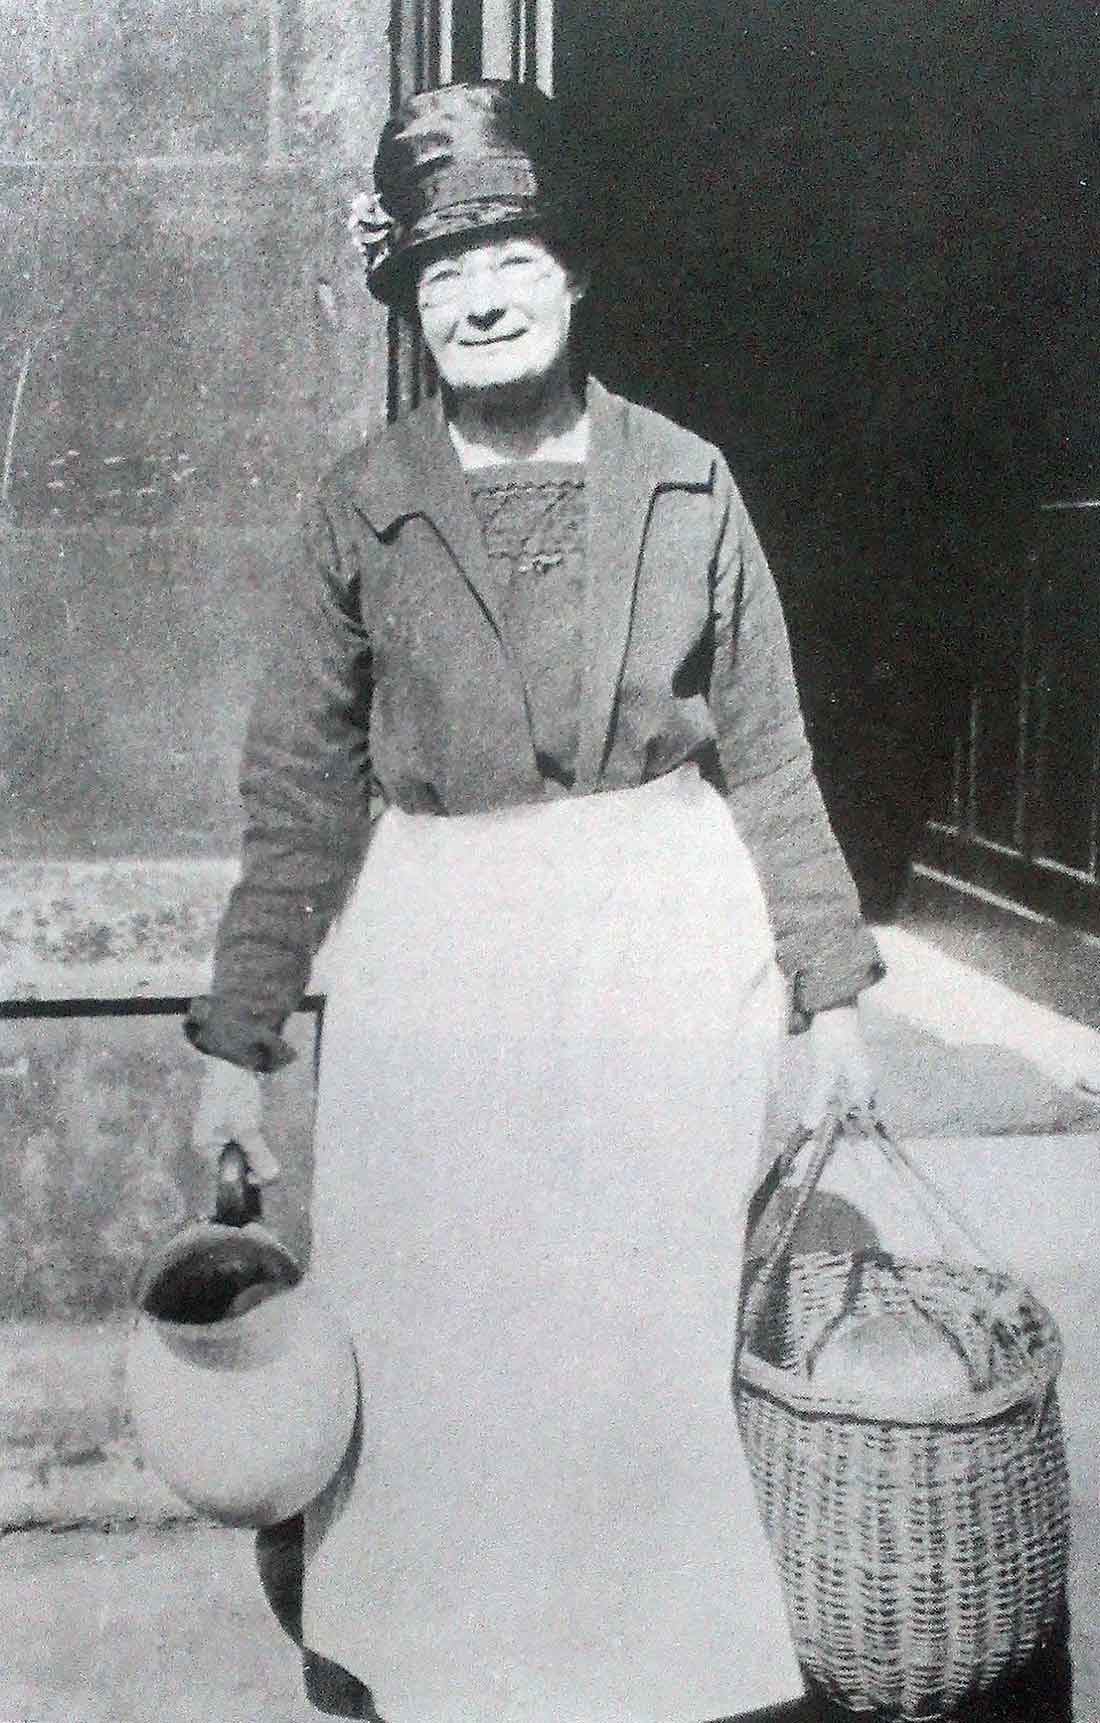 A member of Housekeeping staff in the 1920s